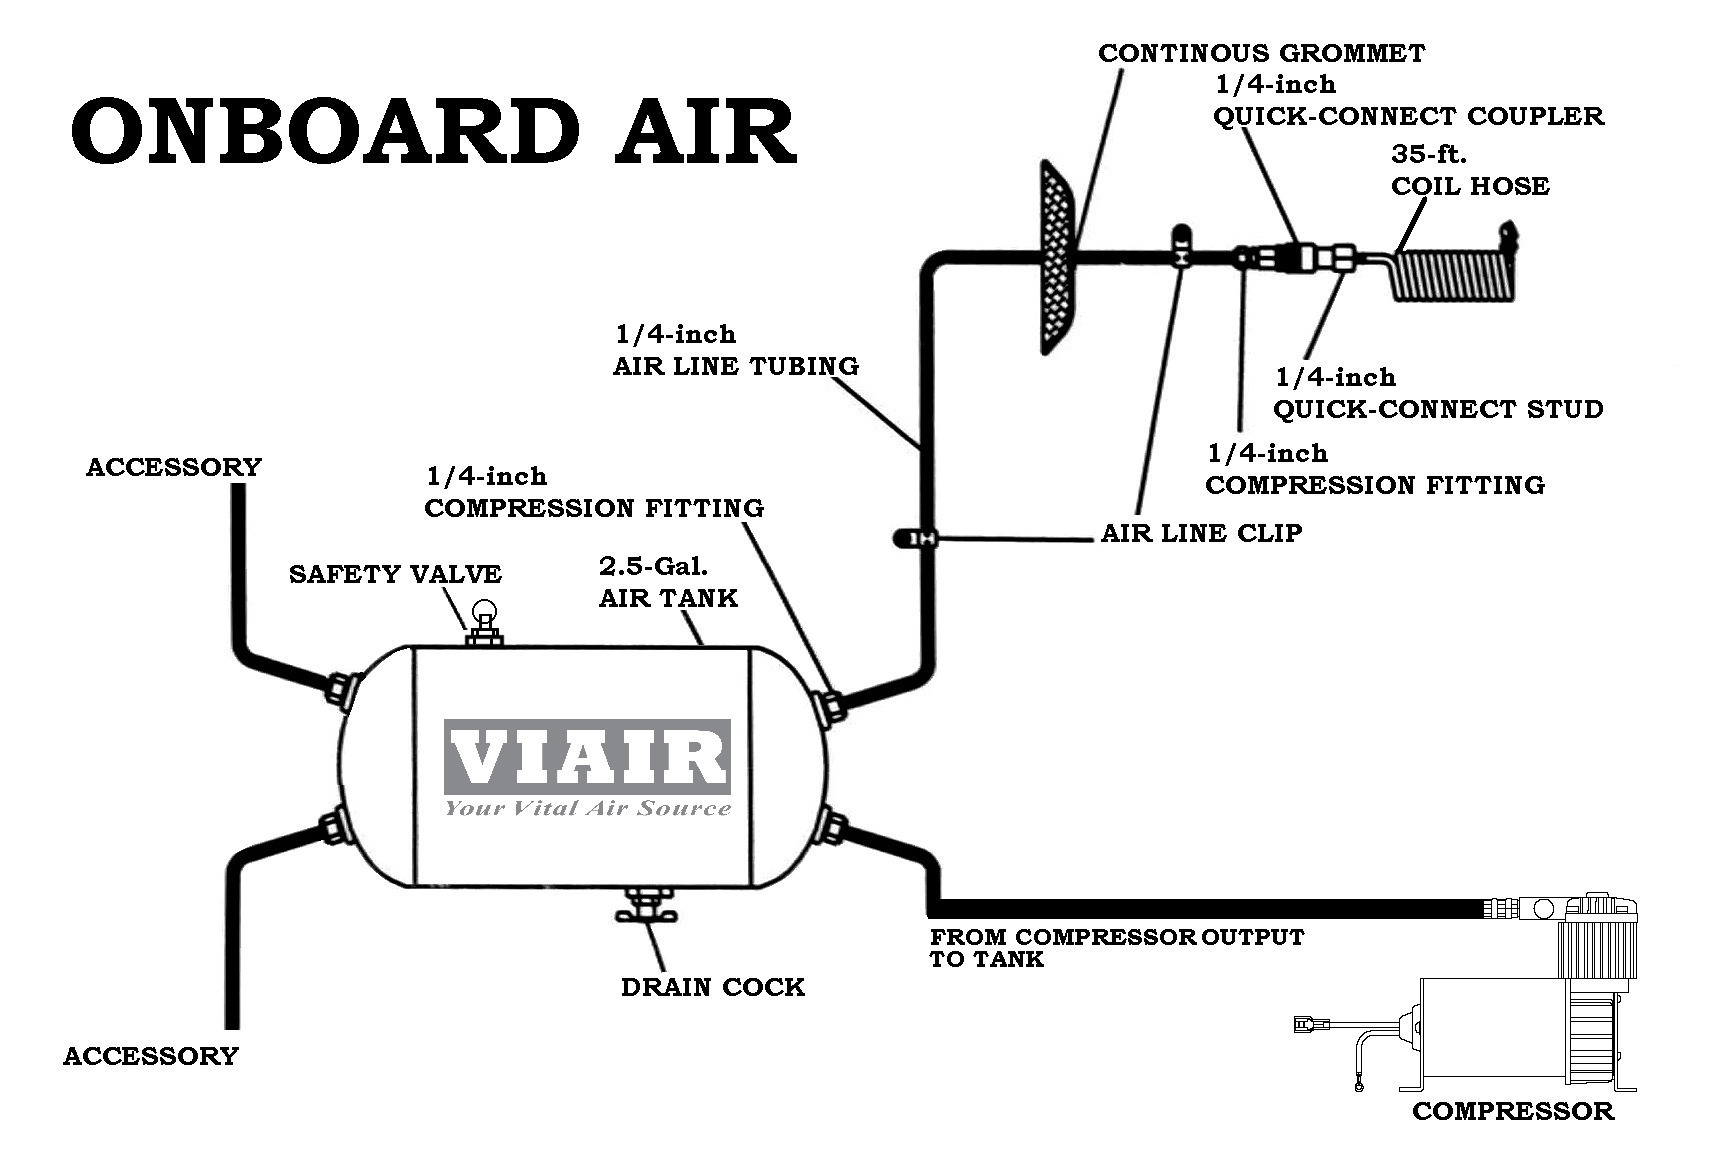 onboard_air air compressor wiring diagram schematic air compressor motor air compressor wiring harness at soozxer.org